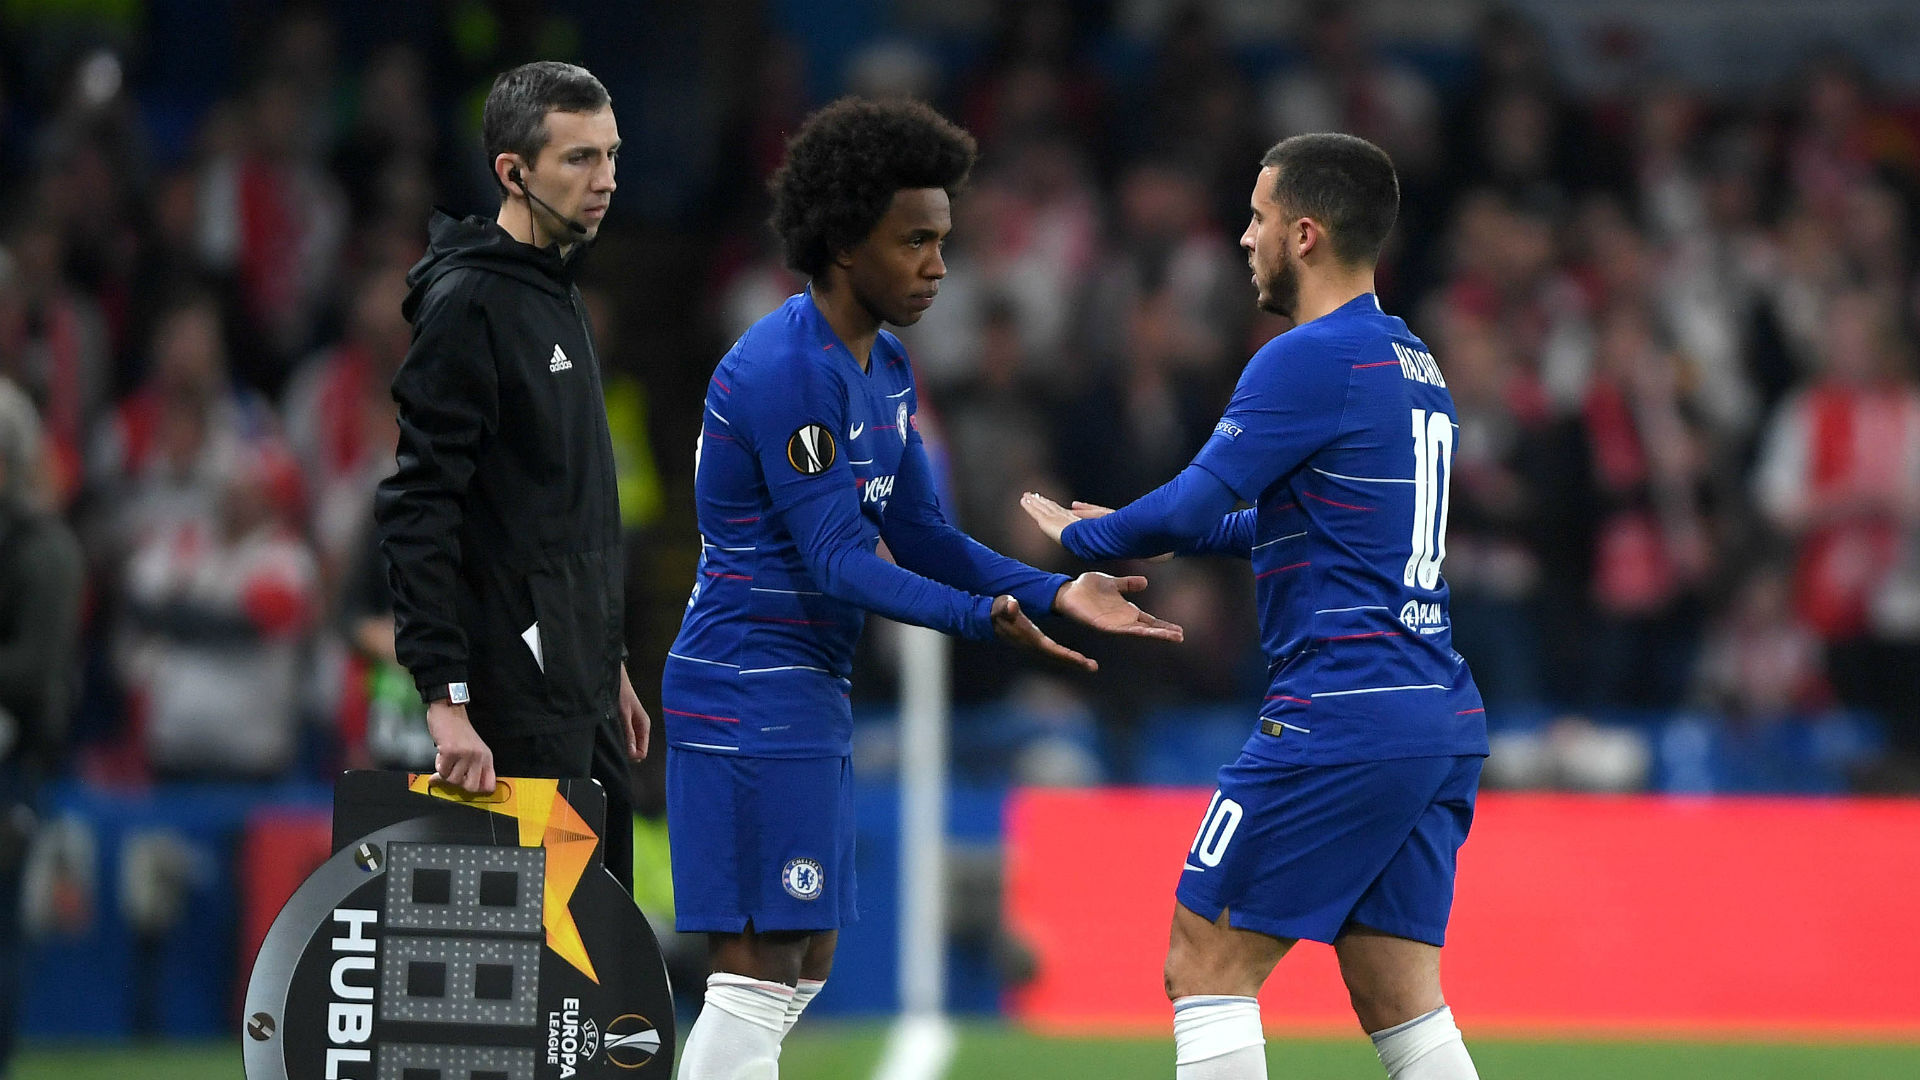 Europa League: Chelsea tipped to win the 2018/19 championship by supercomputer